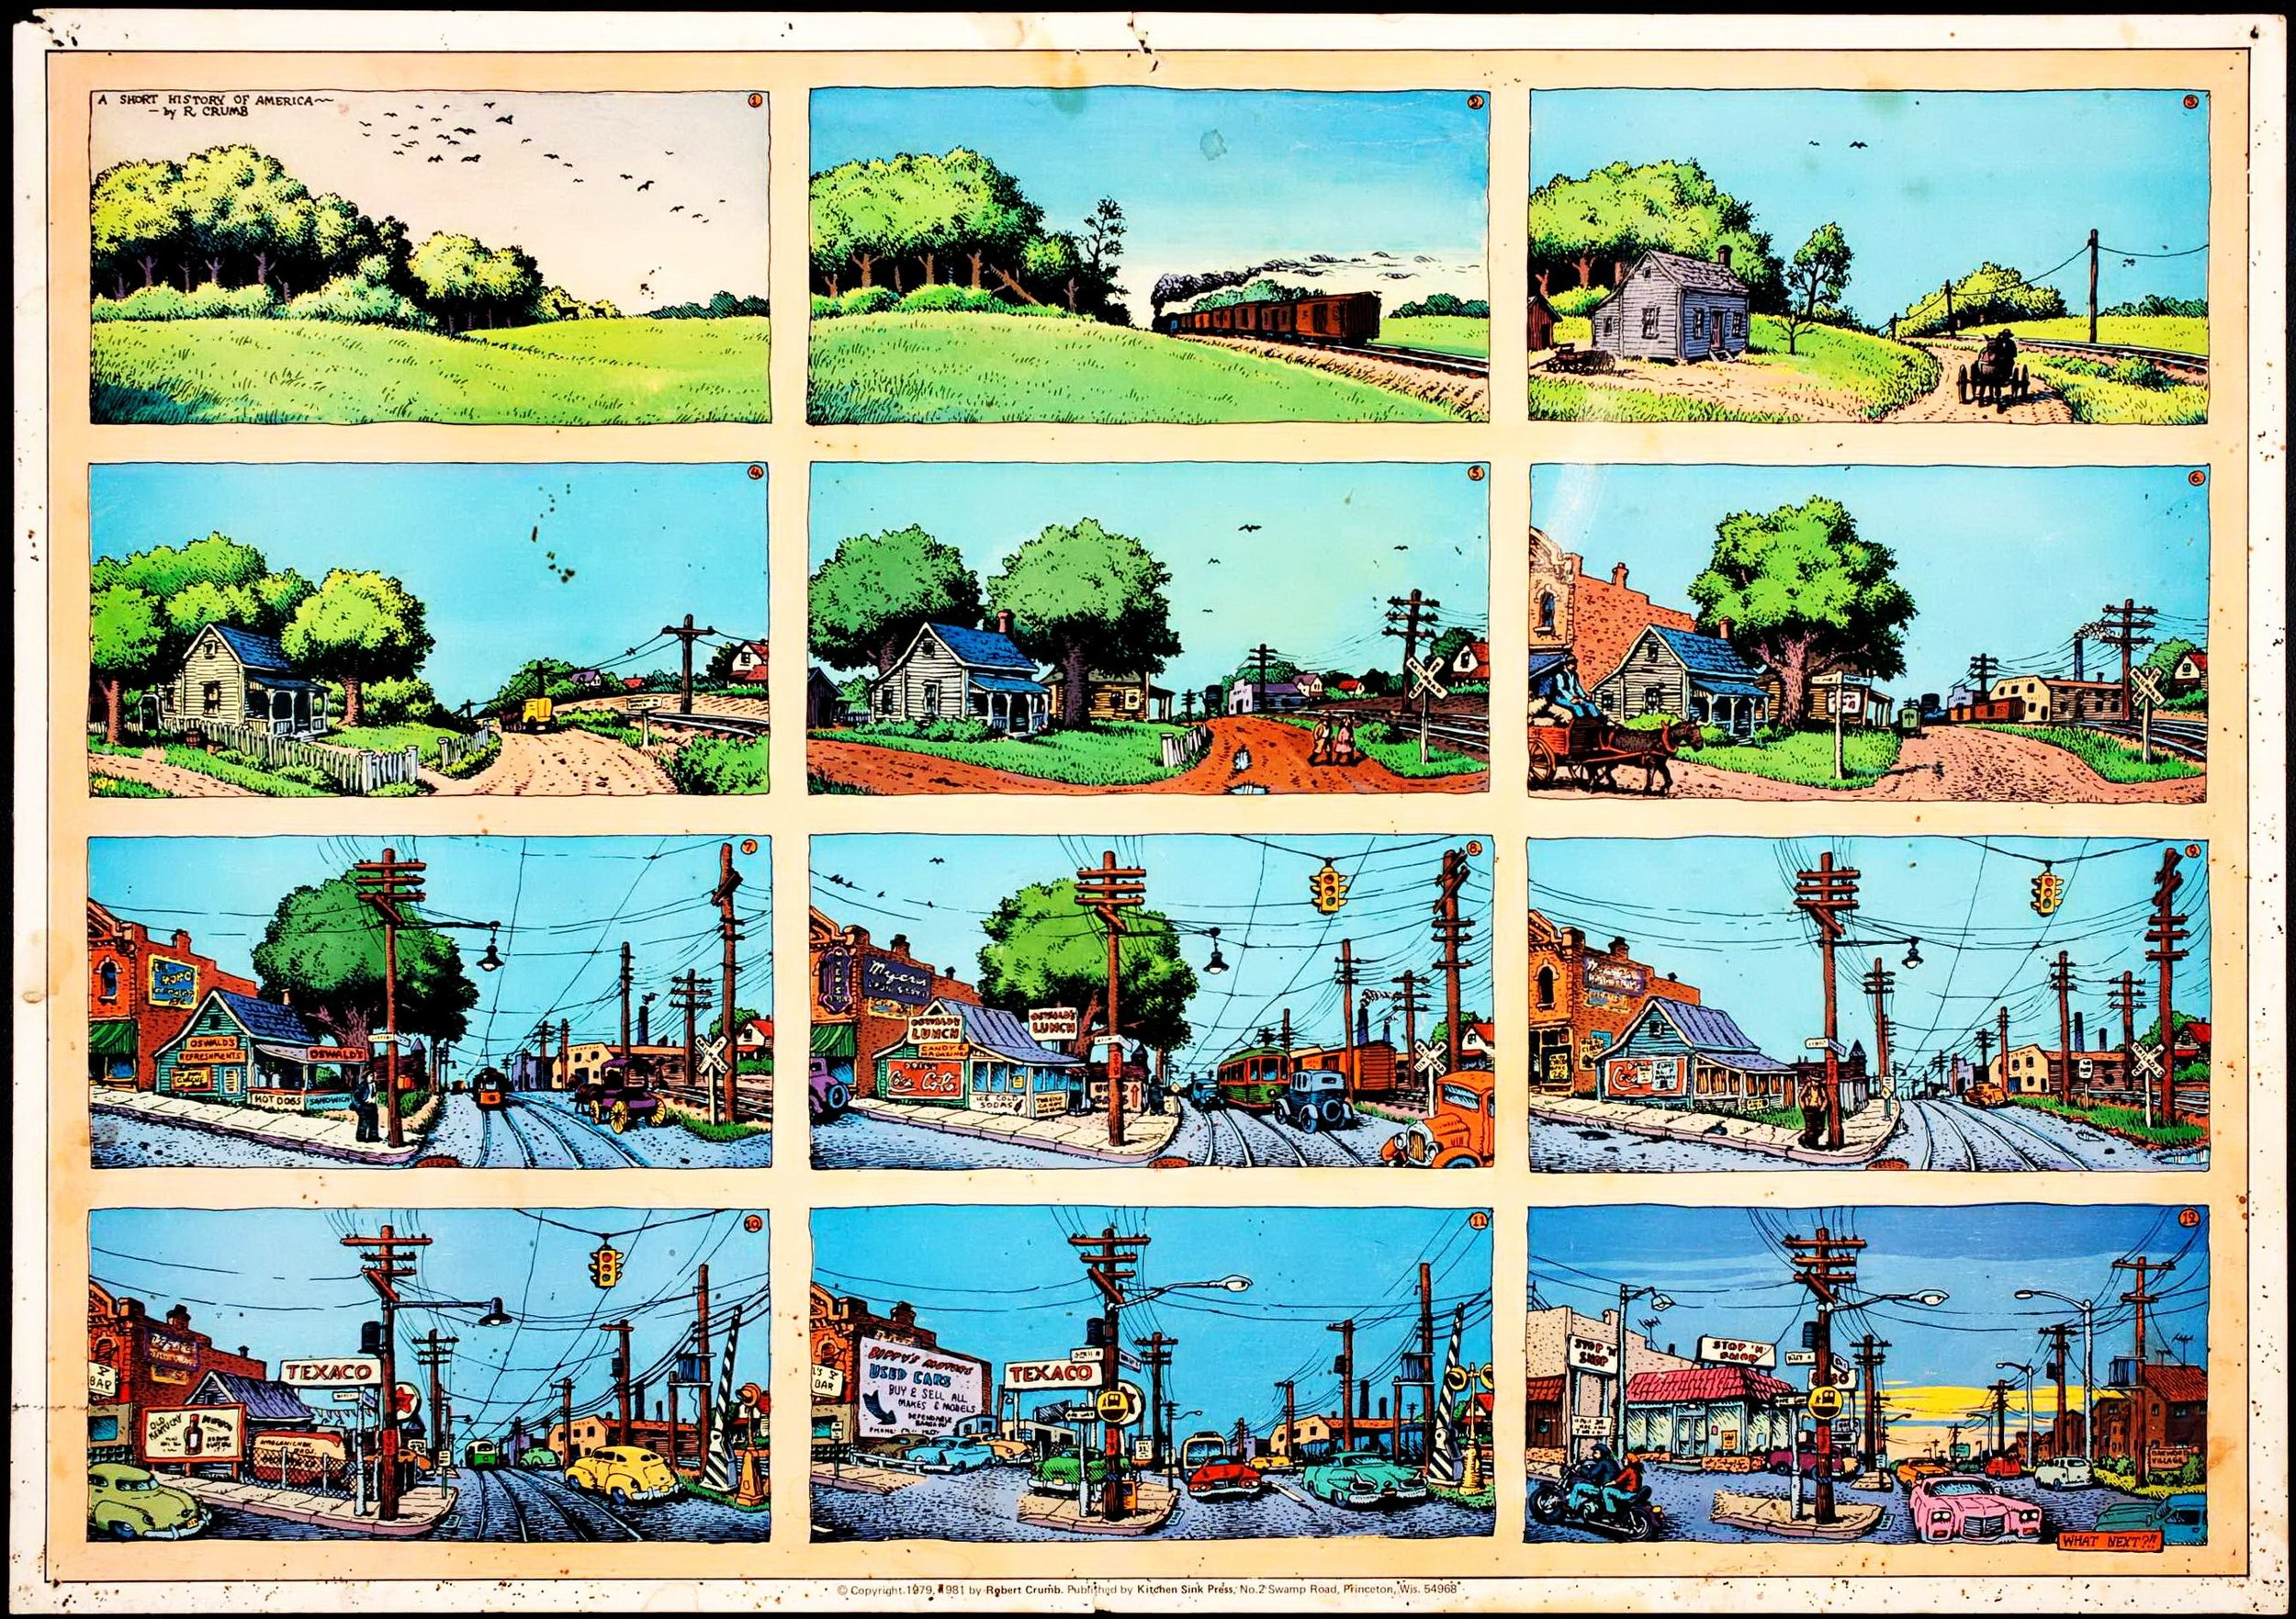 Robert Crumb — A short history of America